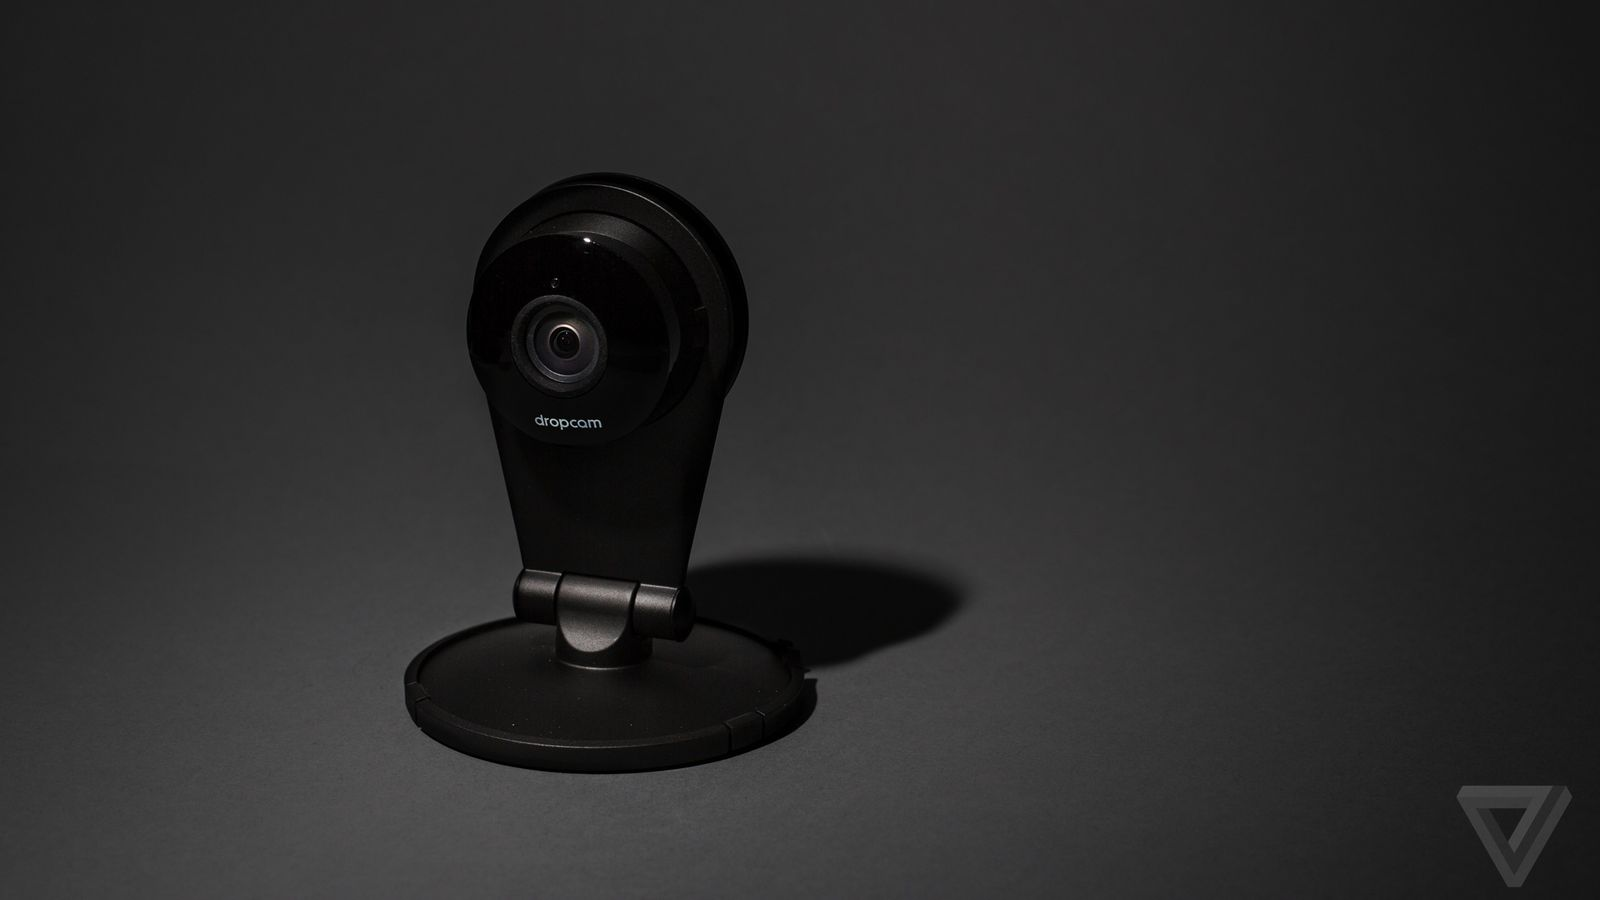 The best home security camera | The Verge